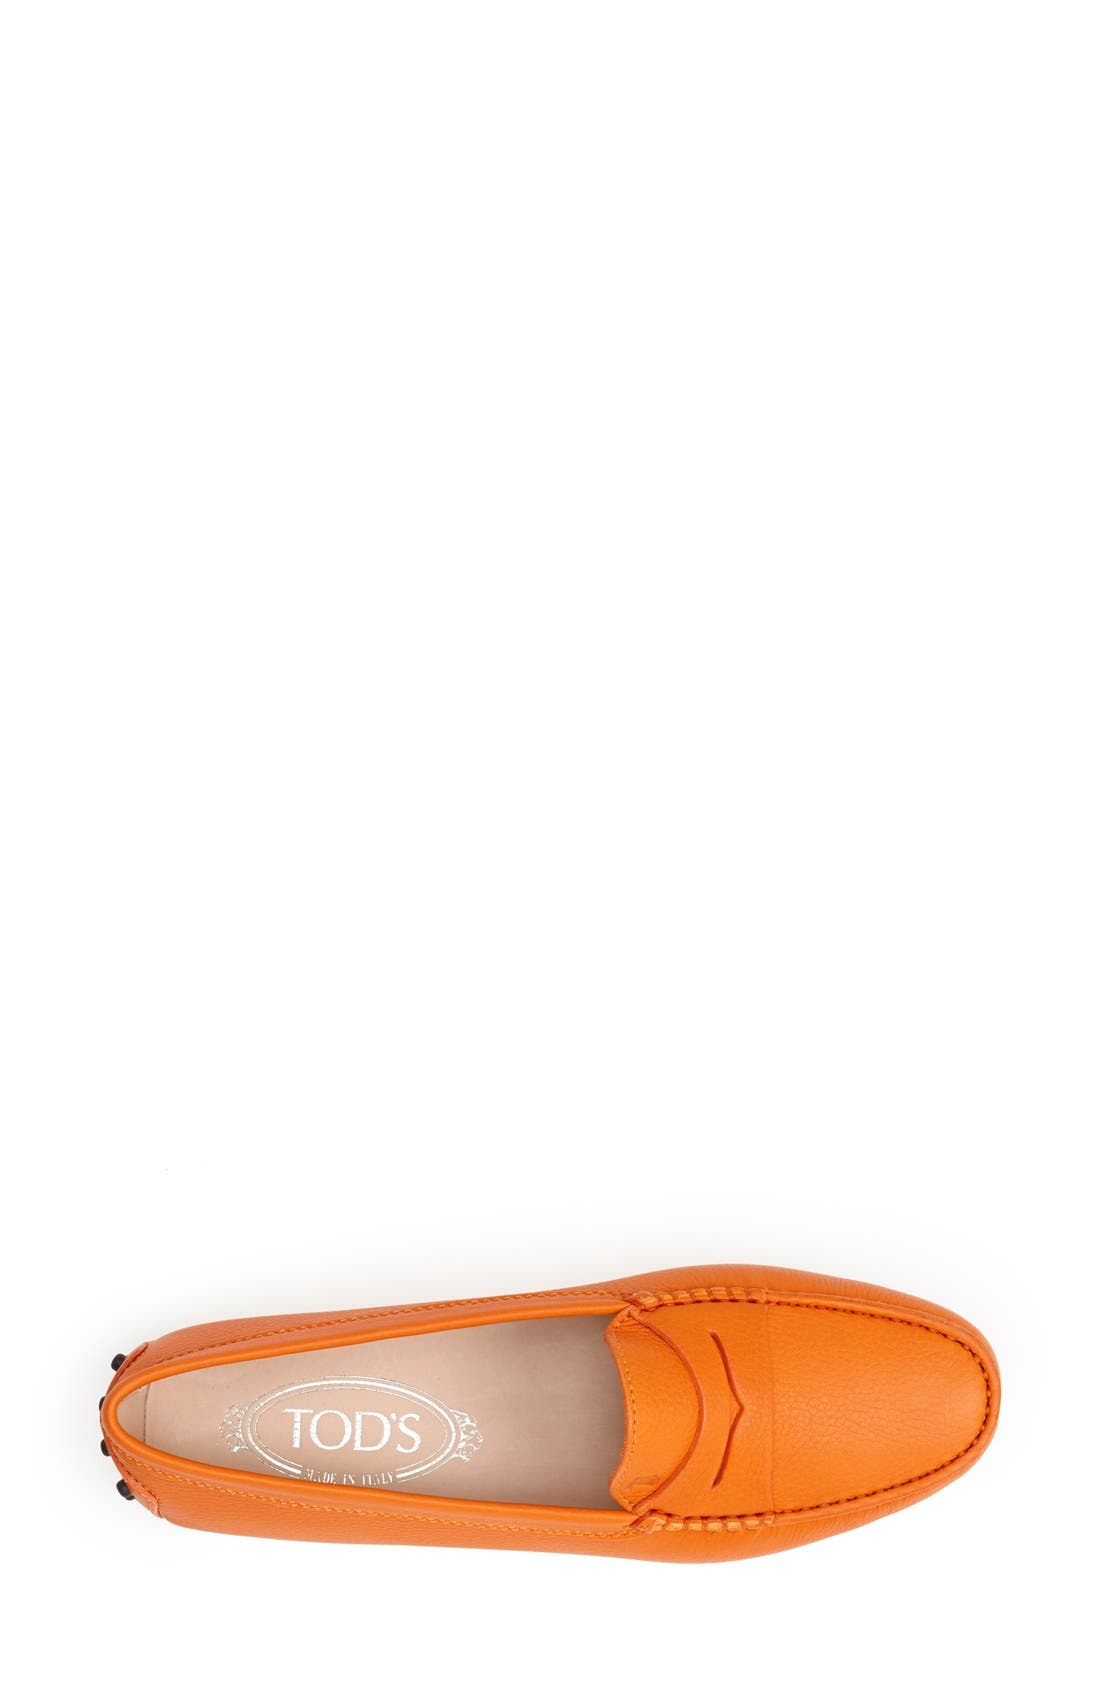 Alternate Image 3  - Tod's 'Gommini' Driving Moccasin (Women)